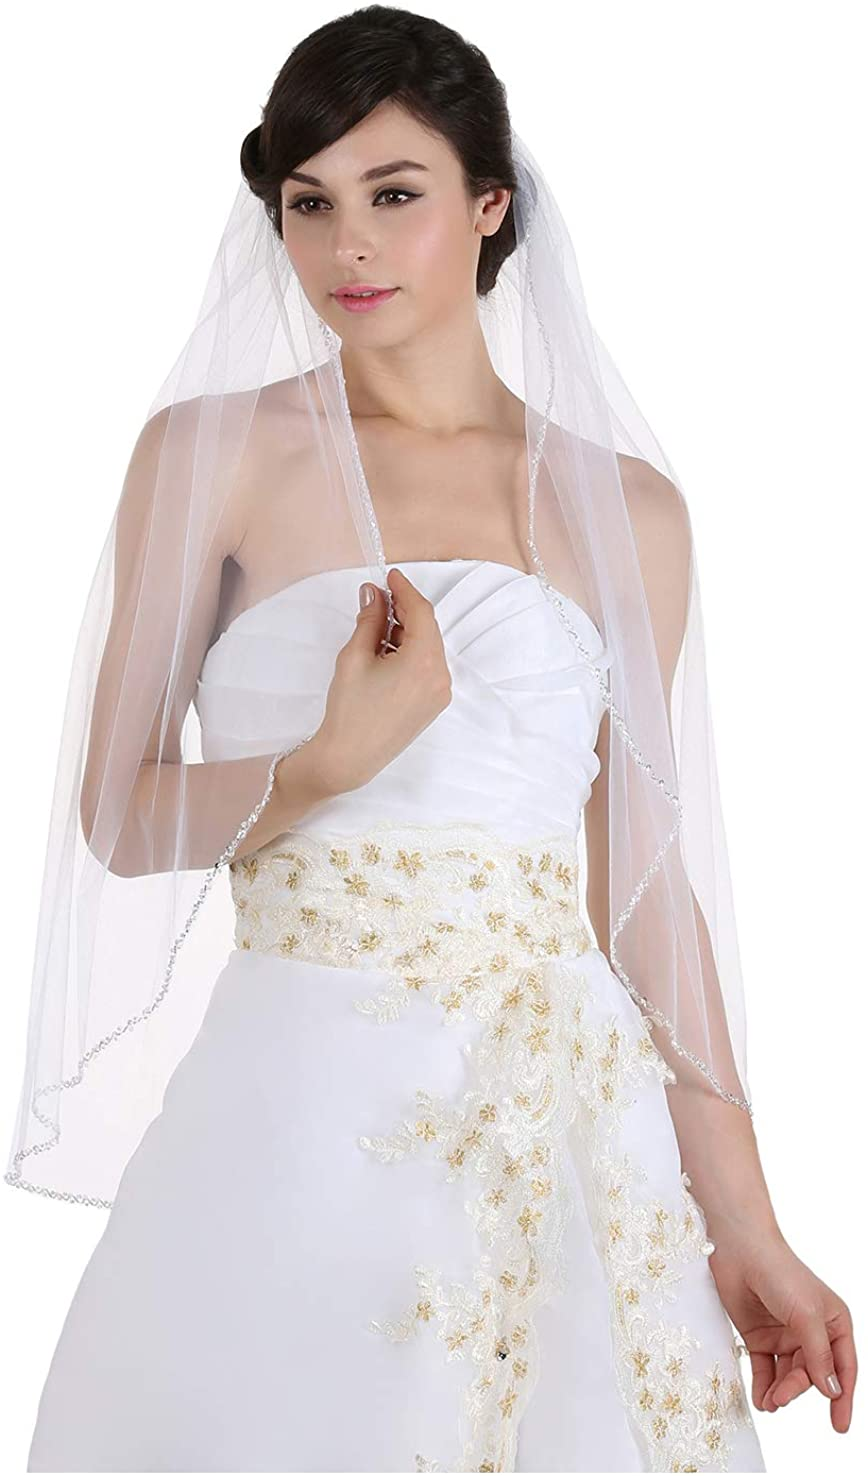 1T 1 Tier Crystals Pearls Beaded Wedding Veil Fingertip Length 36